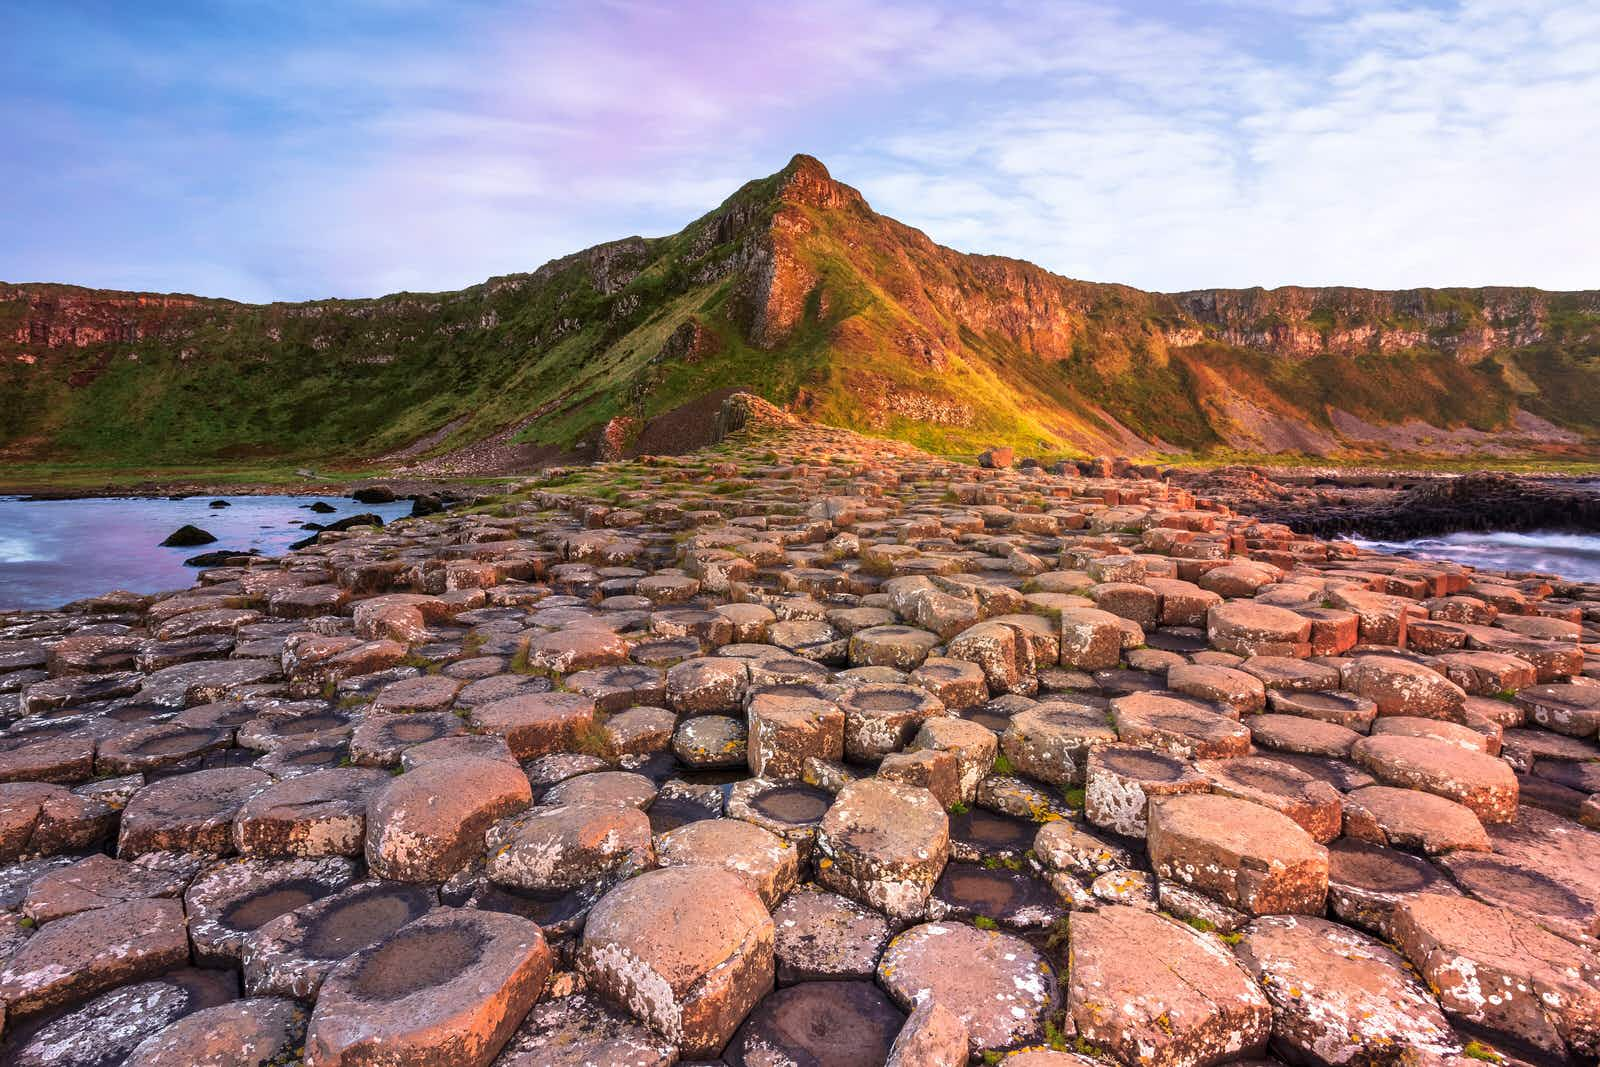 Game of Thrones to the Gobbins: Northern Ireland's Causeway Coast